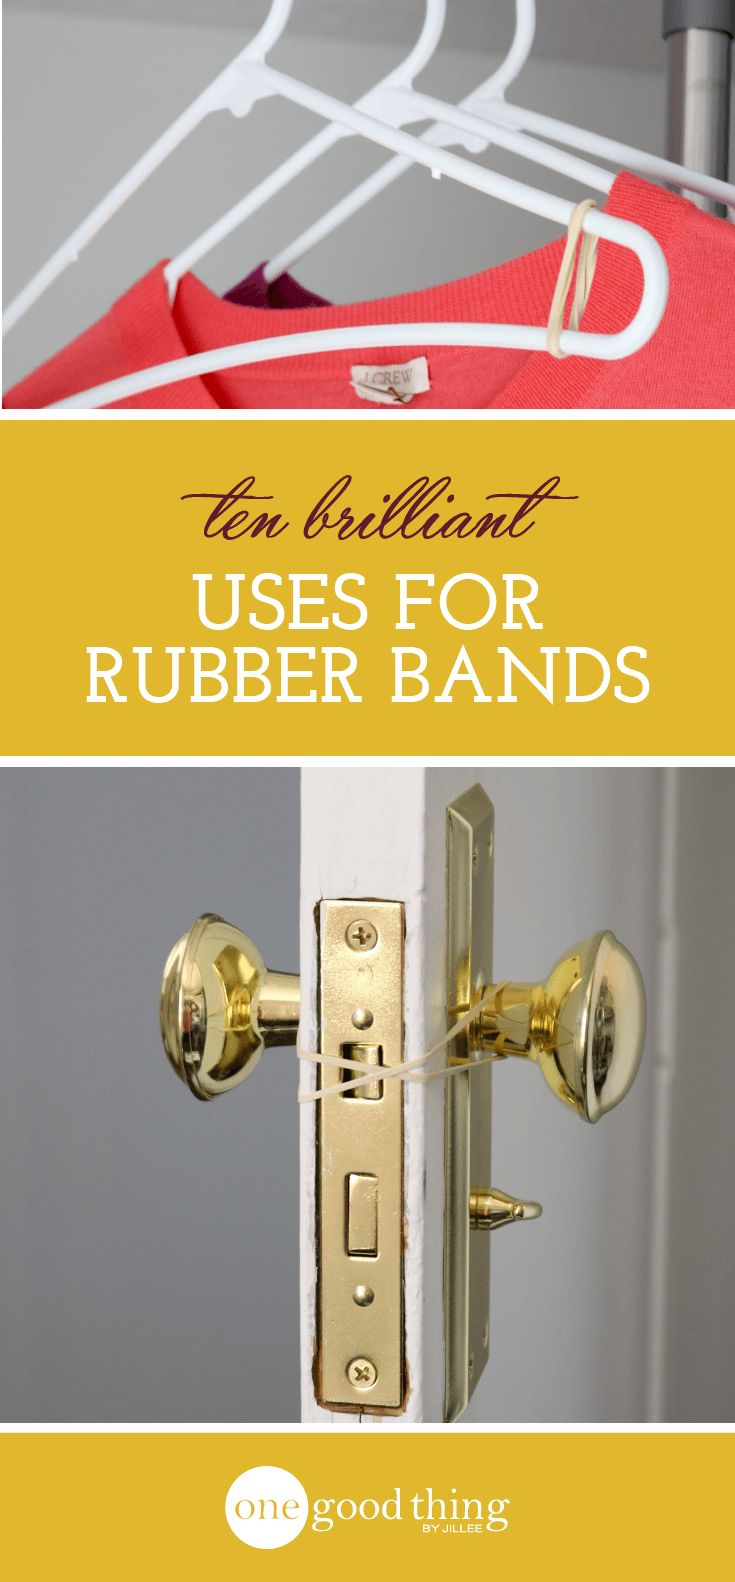 Rubber bands are far more useful than you might think! Check out these 10 surprising ways you can use a rubber band around the house.